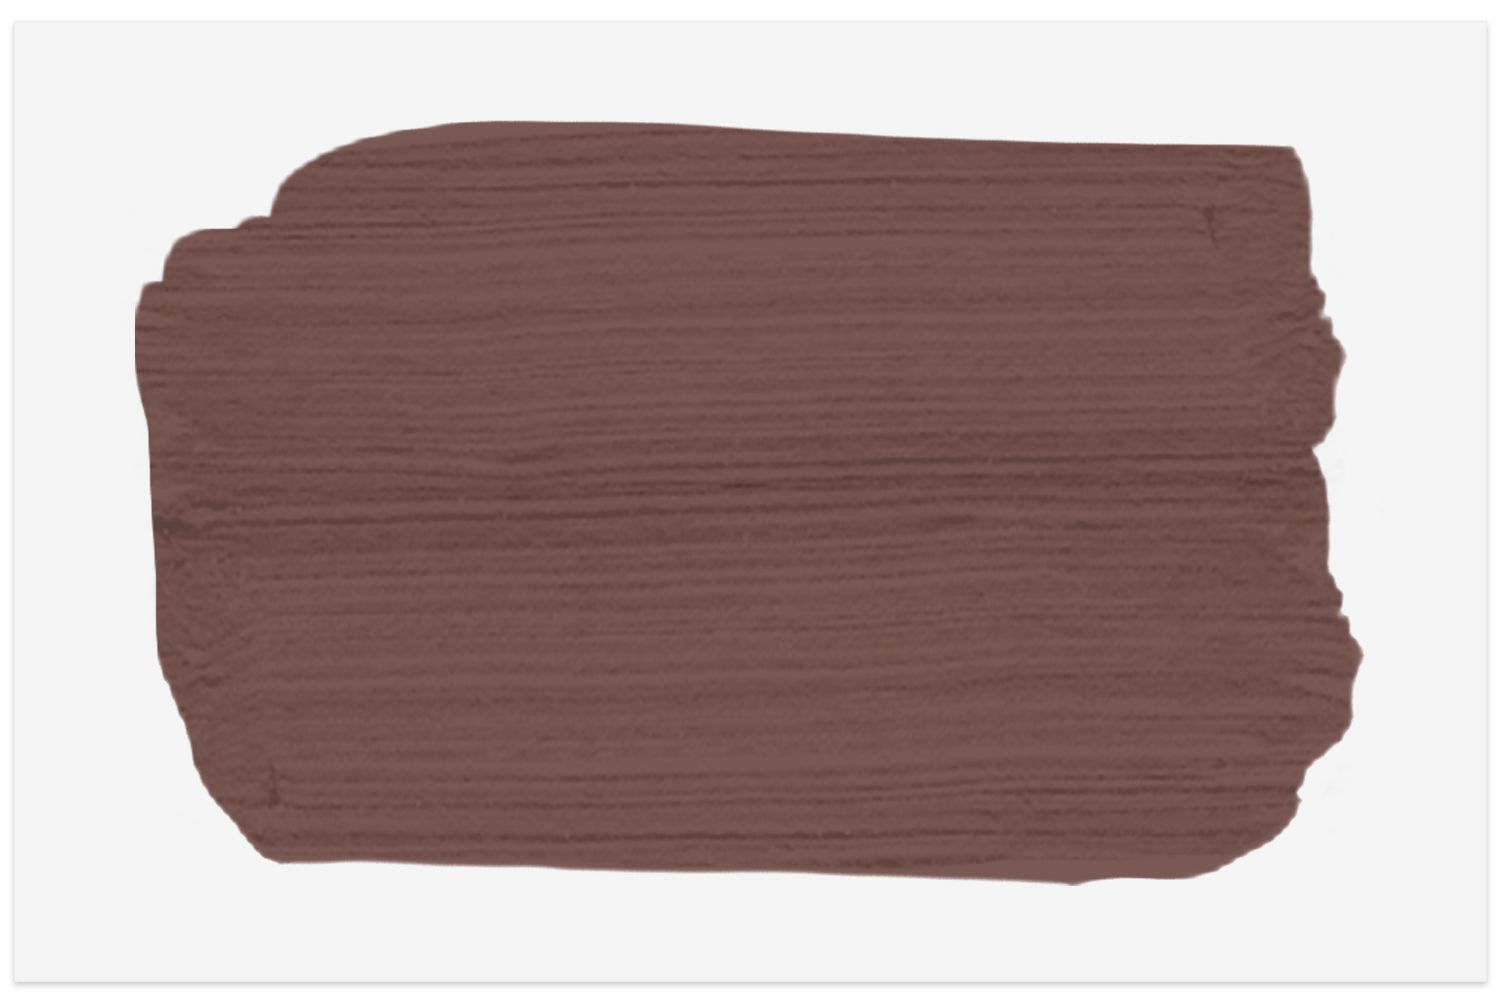 Sequoia Dusk paint swatch from Behr Paints